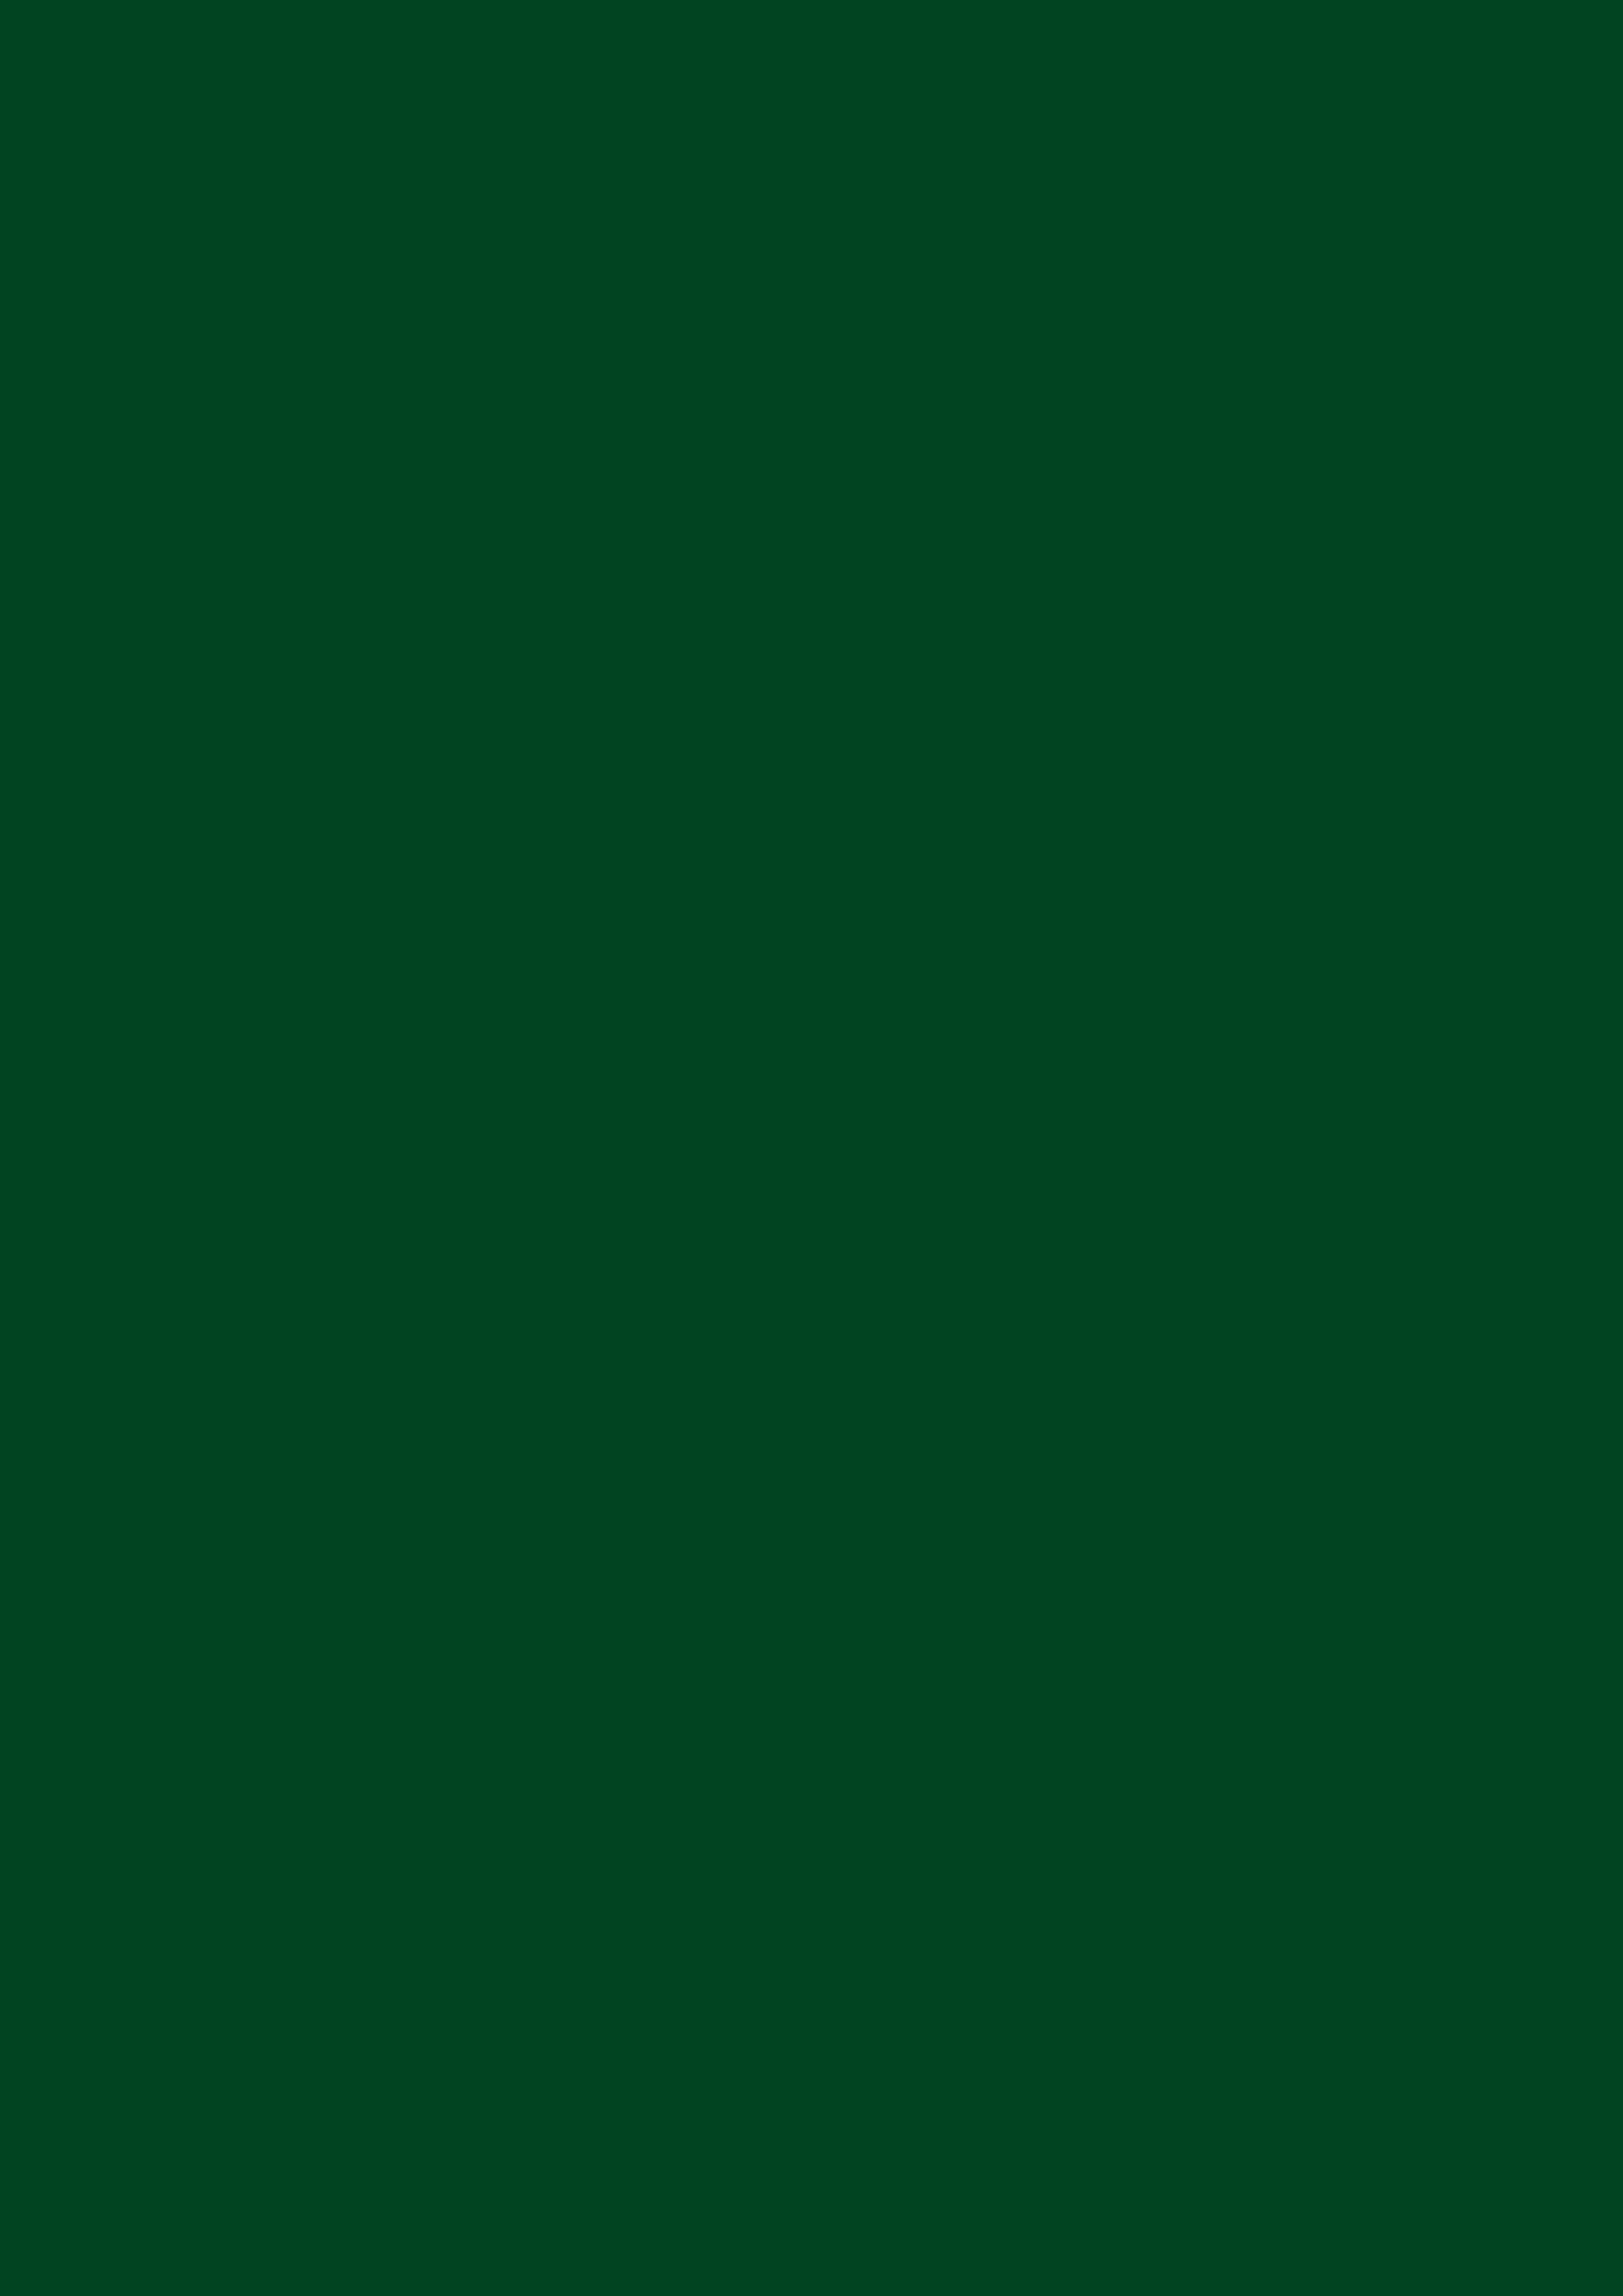 2480x3508 Forest Green Traditional Solid Color Background